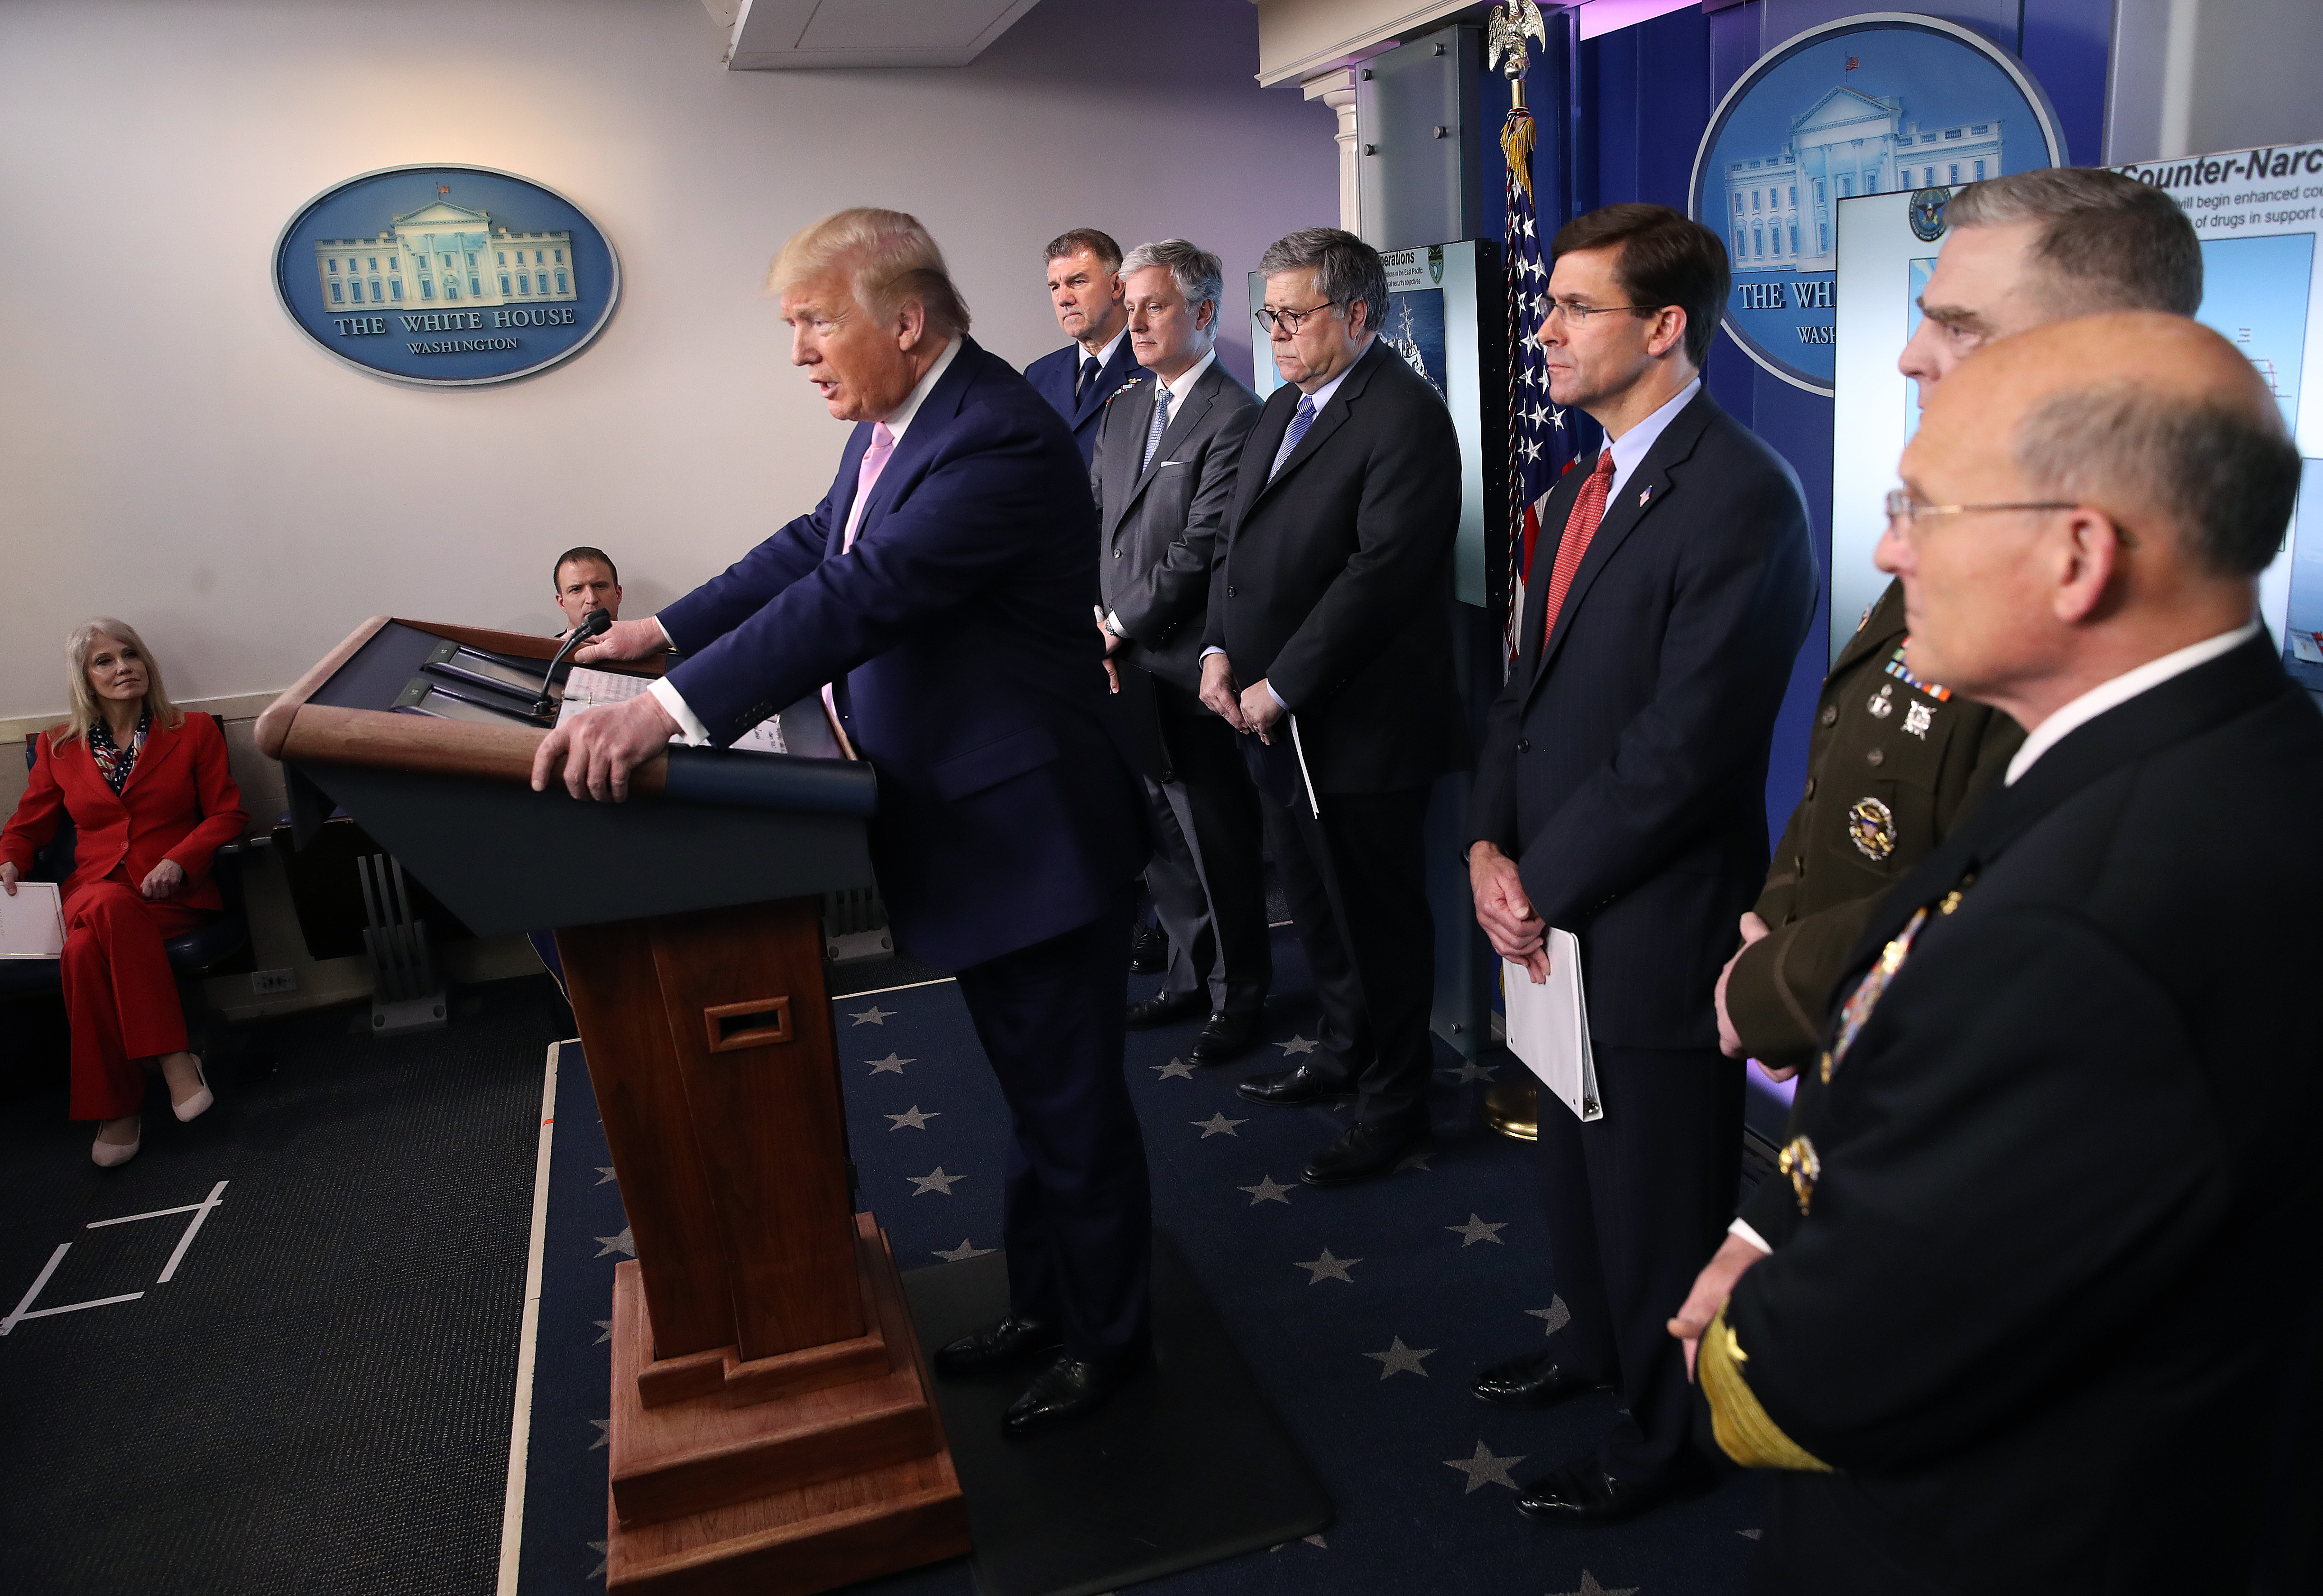 WASHINGTON, DC - APRIL 01: U.S. President Donald Trump speaks at the press briefing room flanked by (L-R) U.S. Coast Guard Commandant Admiral Karl Schultz, National Security Advisor Robert O'Brien, Attorney General William Barr, Defense Secretary Mark Esper, Chairman of the Joint Chiefs of Staff Gen. Mark Milley and Chief of Naval Operations Admiral Michael Gilday on April 1, 2020 in Washington, DC. After announcing yesterday that COVID-19 could kill between 100,000 and 240,000 Americans, the Trump administration is also contending with the economic effects of the outbreak as the stock market continues to fall, businesses remain closed, and companies lay off and furlough employees. (Photo by Win McNamee/Getty Images)